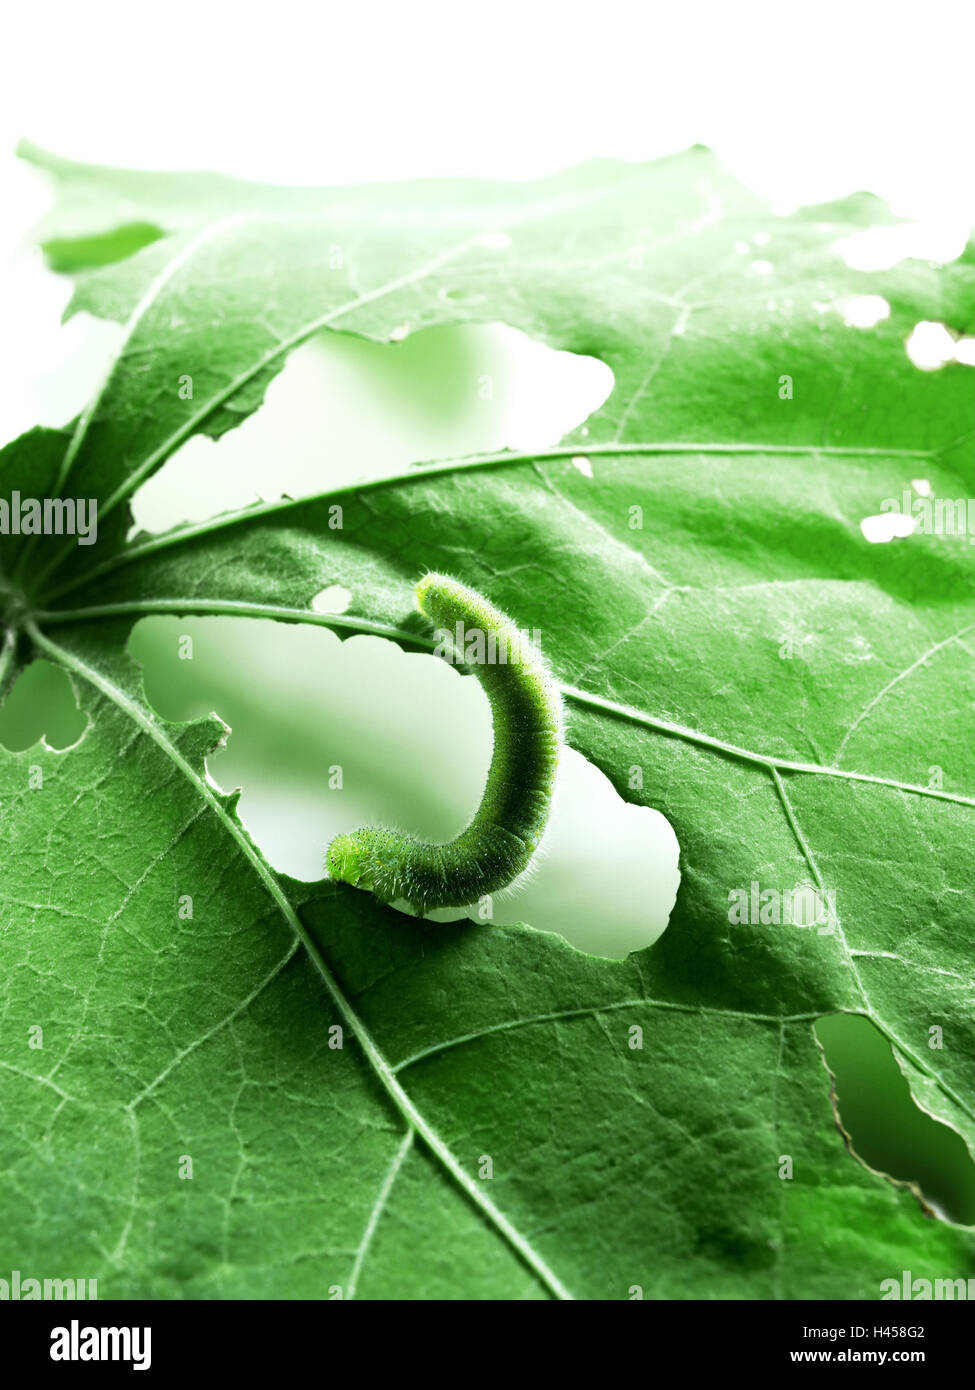 Caterpillar, leaves, green, corroded, eaten out, eat, greedy, insect, hole, metamorphosis, monochrome, course, conversion, - Stock Image